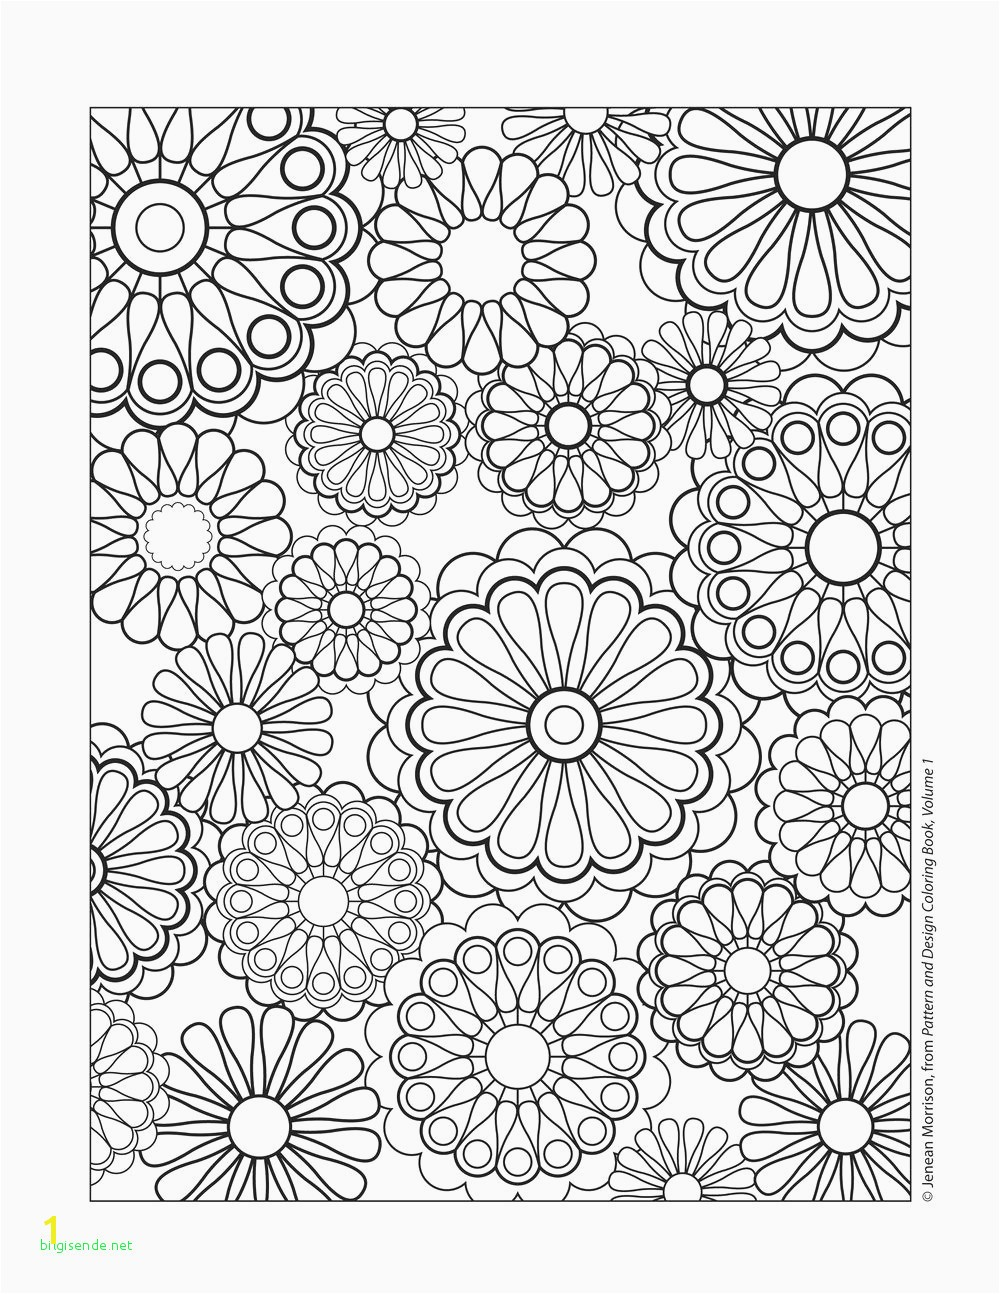 Design Printable Coloring Pages for Girls Elegant Coloring Pages Coloring Page Games 38 Pages Game Lovely